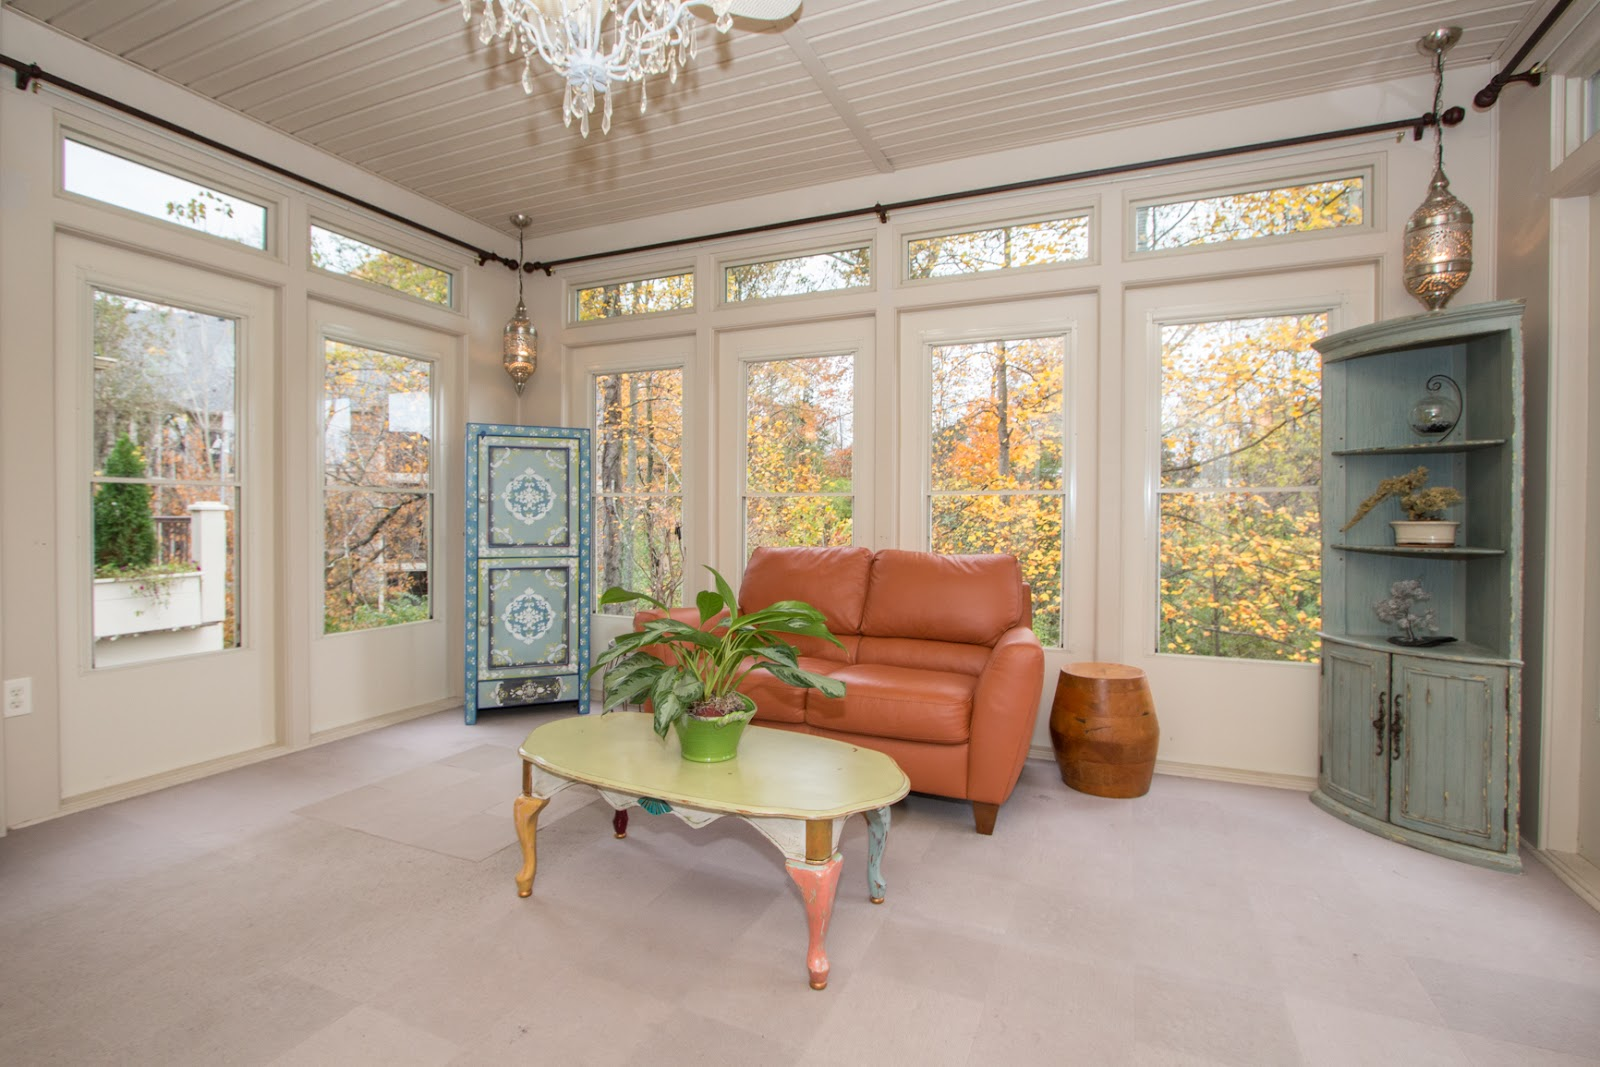 Beautiful all season room that has it's own heating/cooling system. The large windows overlook a forest wonderland. This sunroom is in 10901 Jordain Drive Louisville KY 40241, currently listed by Pam Ruckriegel 502-435-5524